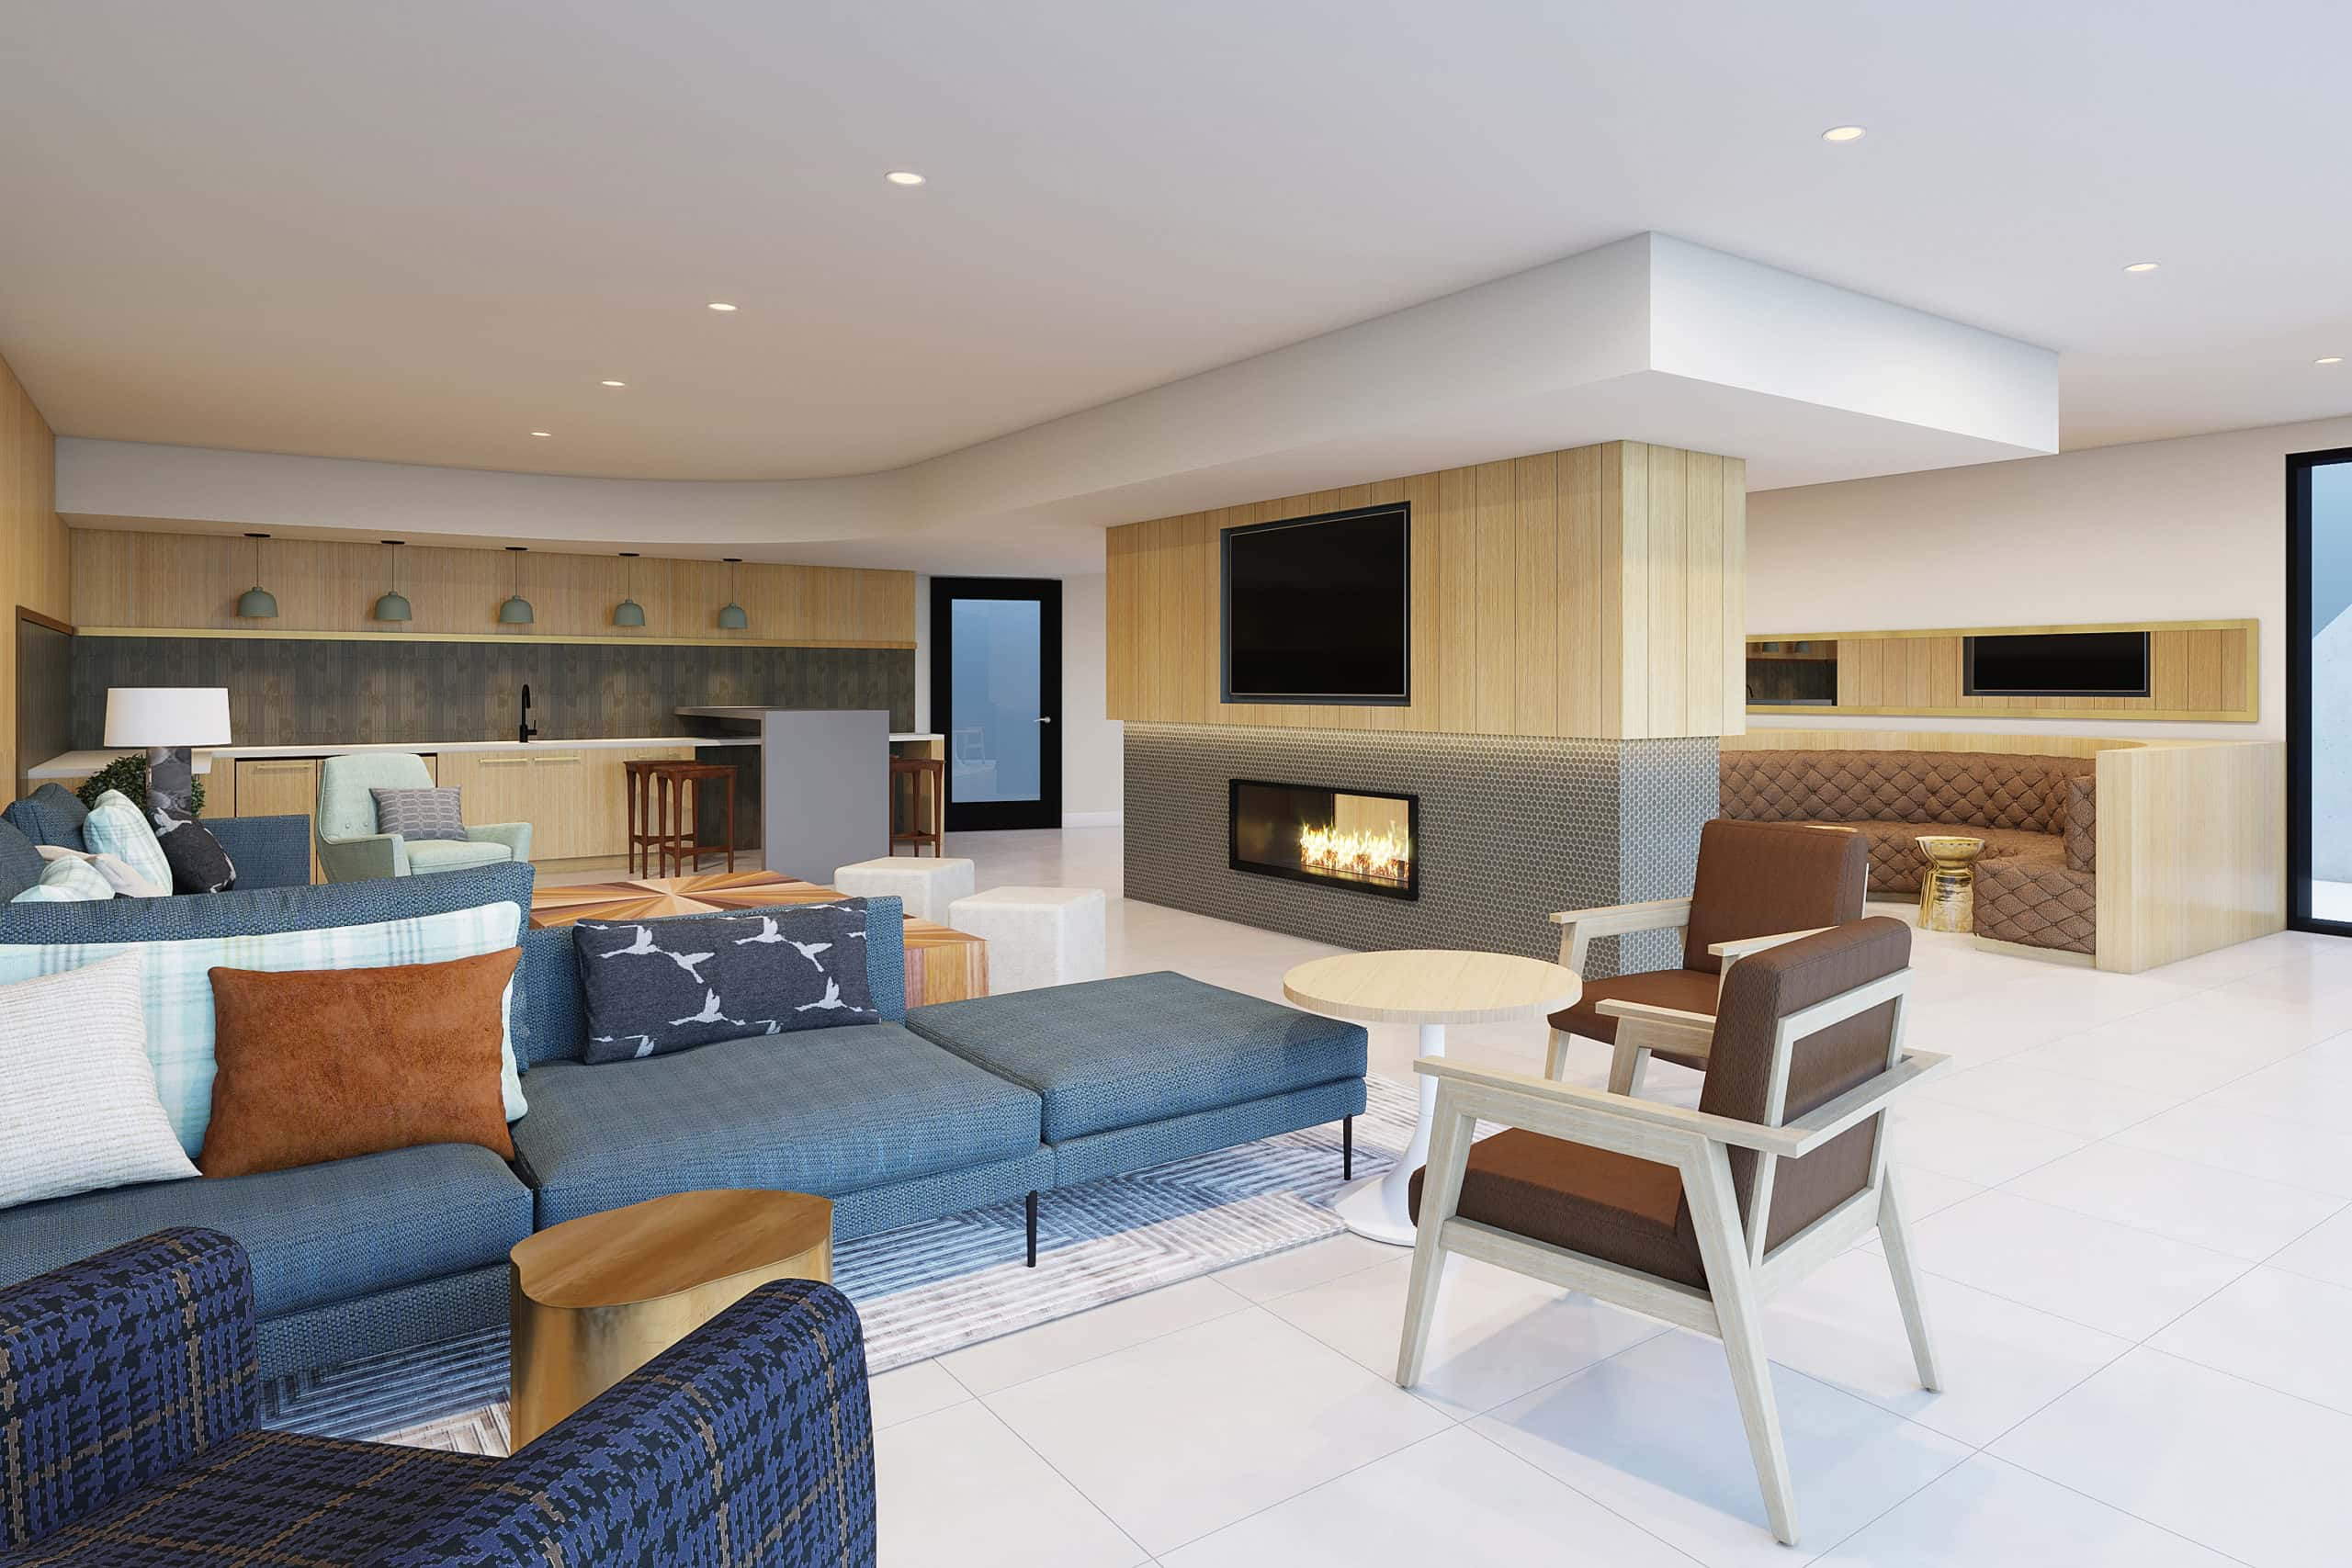 Upper Ivy Culver City Apartments - Residential Cabana